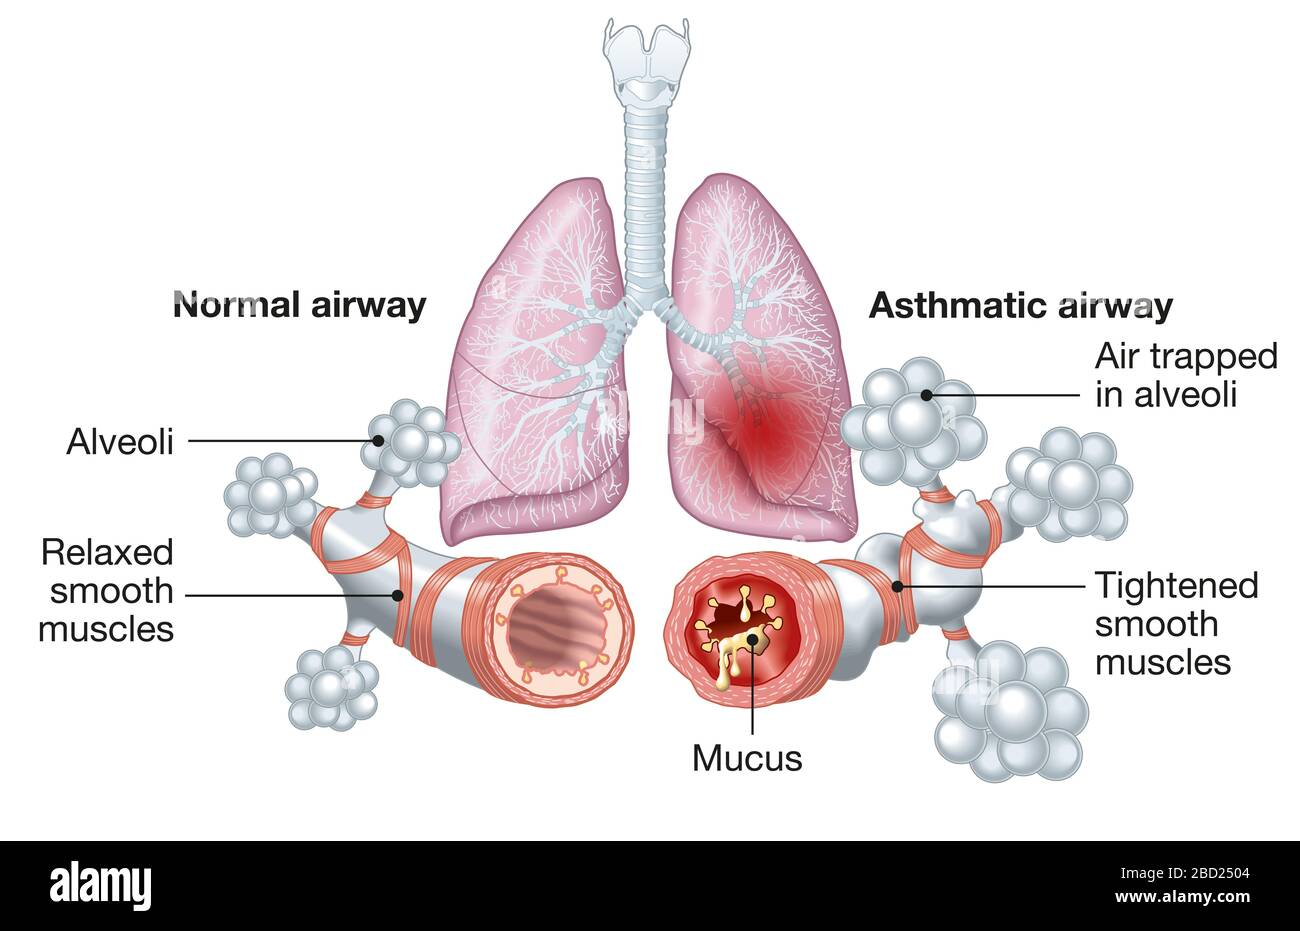 Diagram showing Asthma, normal and asthmatic airways, medically  illustration Stock Photo - AlamyAlamy